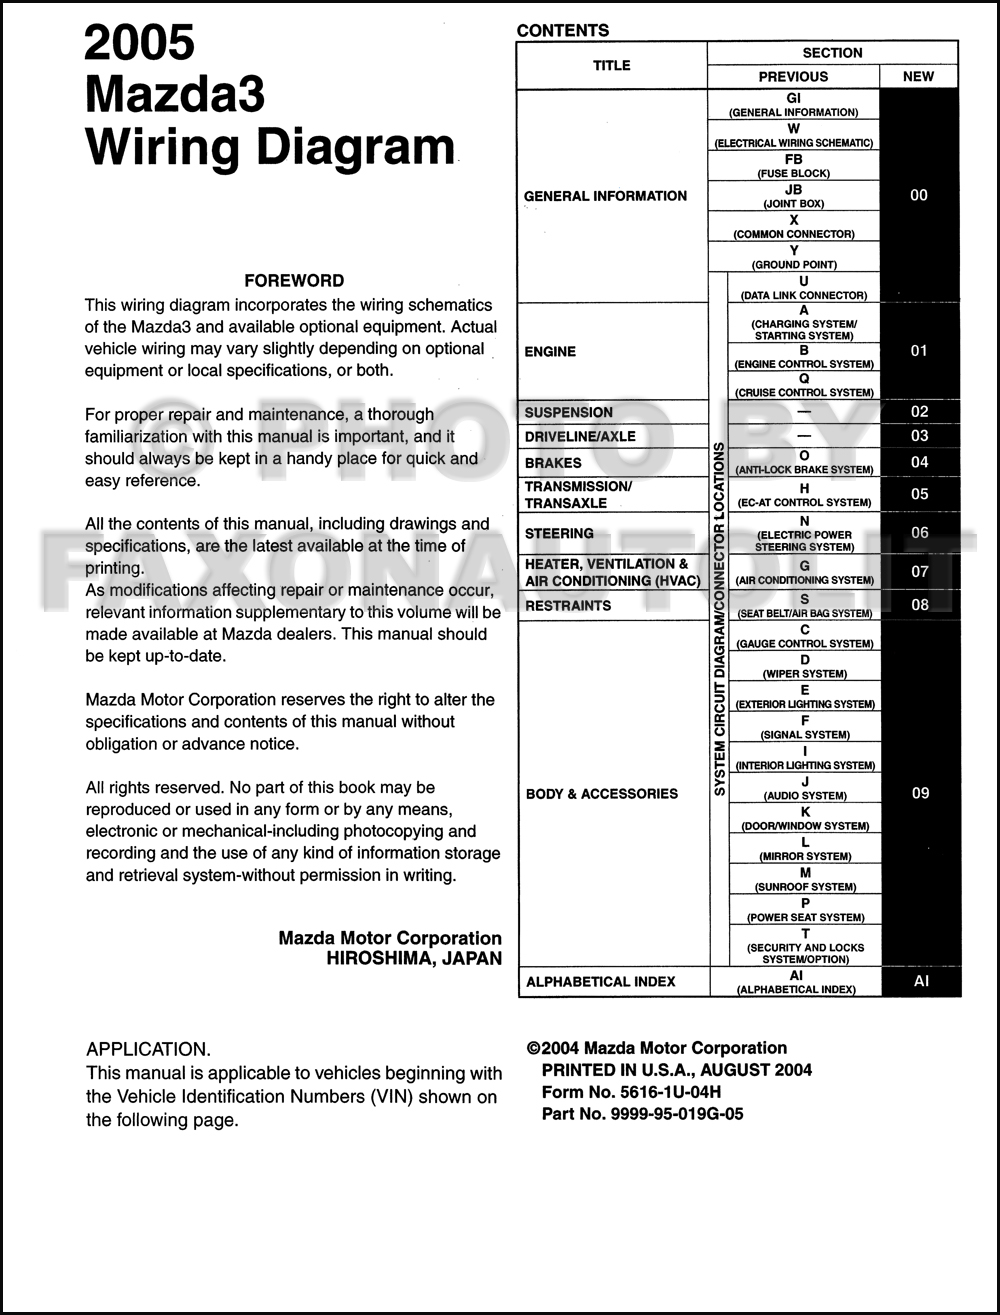 2005 mazda 3 wiring diagram manual original 2005 mazda 3 wiring diagram manual original click on thumbnail to zoom cheapraybanclubmaster